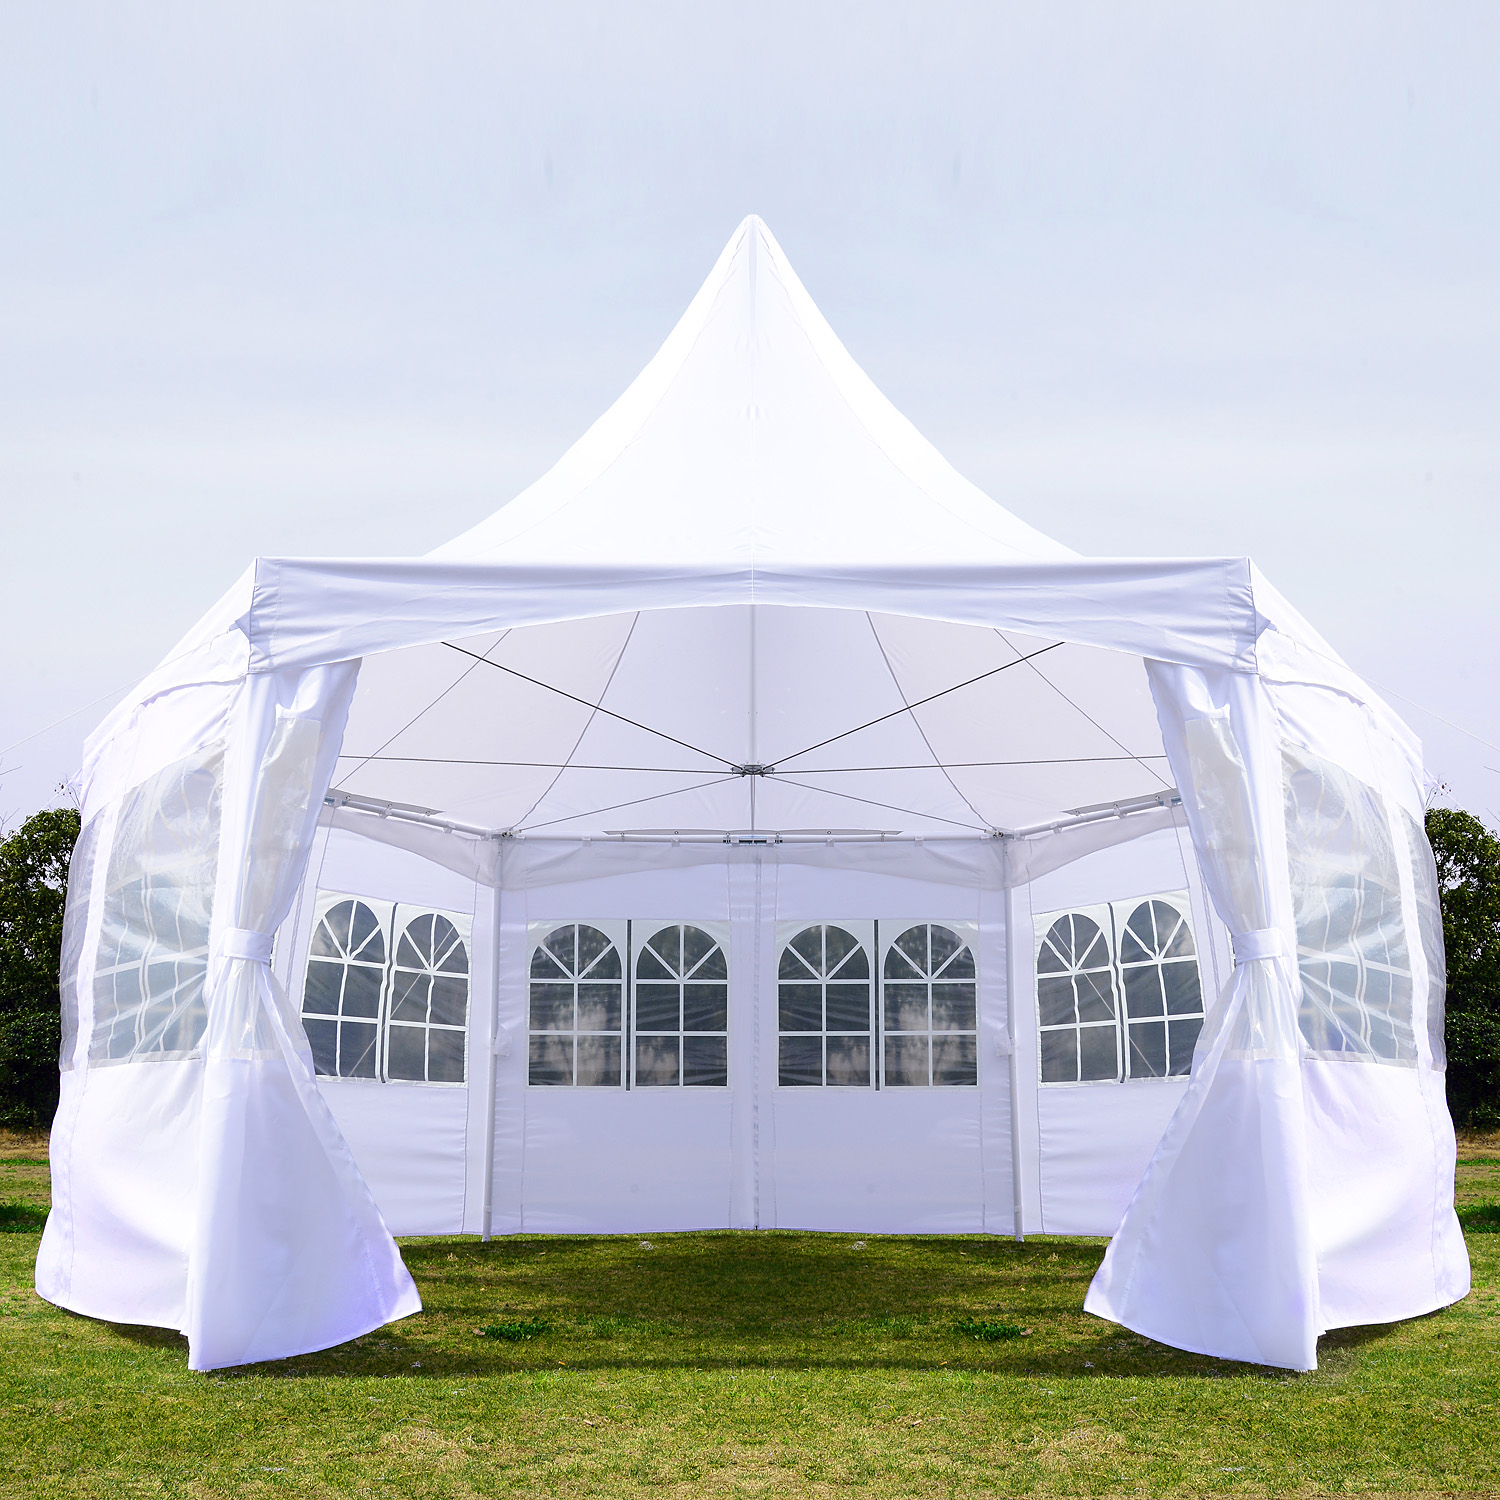 Image of CAD $449.99 Outsunny Pagoda Party Tent w/ Removable Sidewalls Wedding Outdoor Gazebo Canopy White /